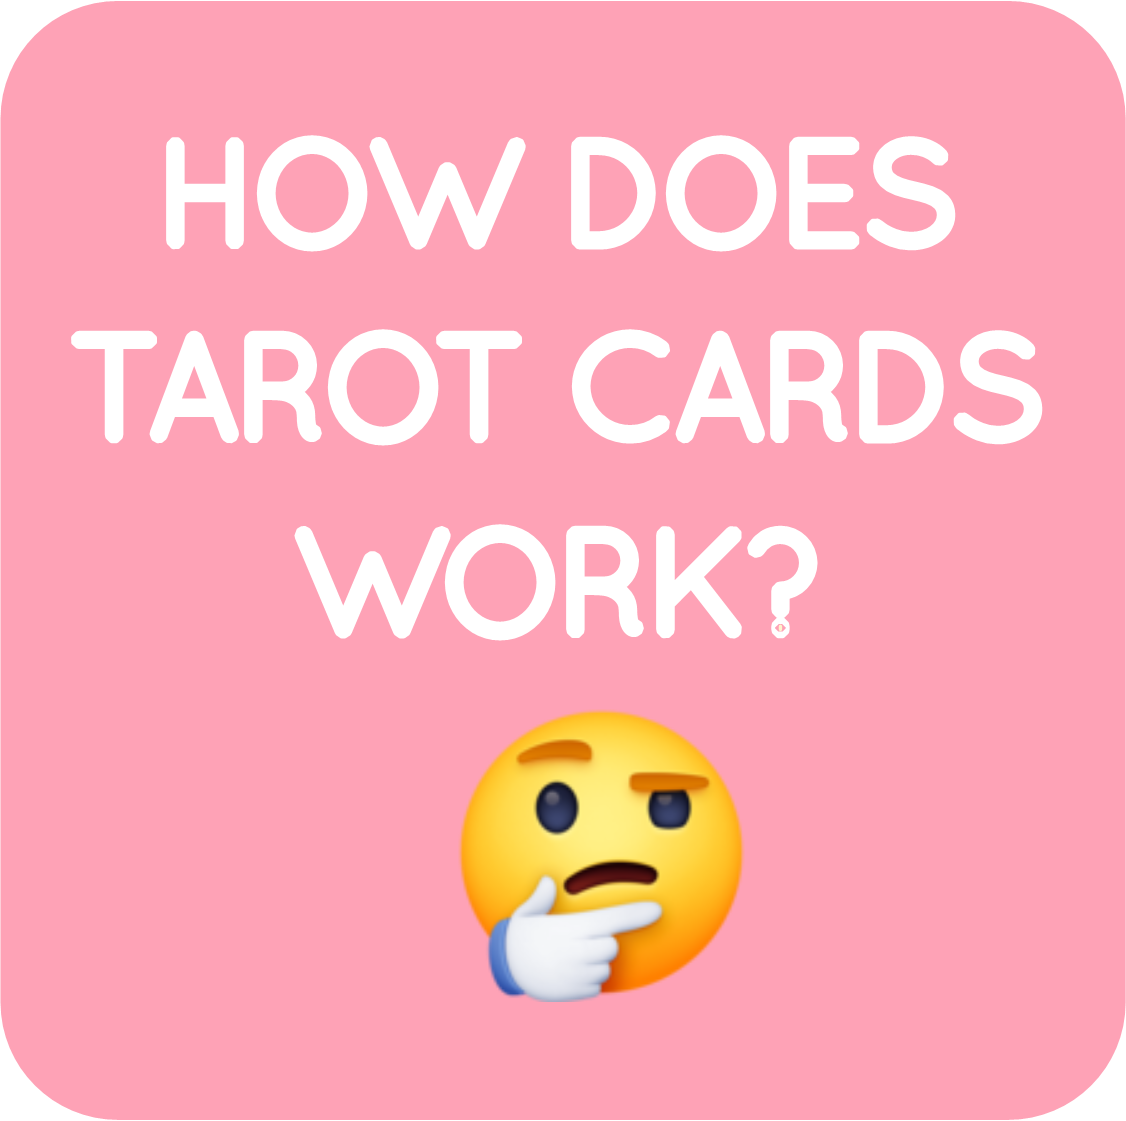 19-how does tarot cards work.png